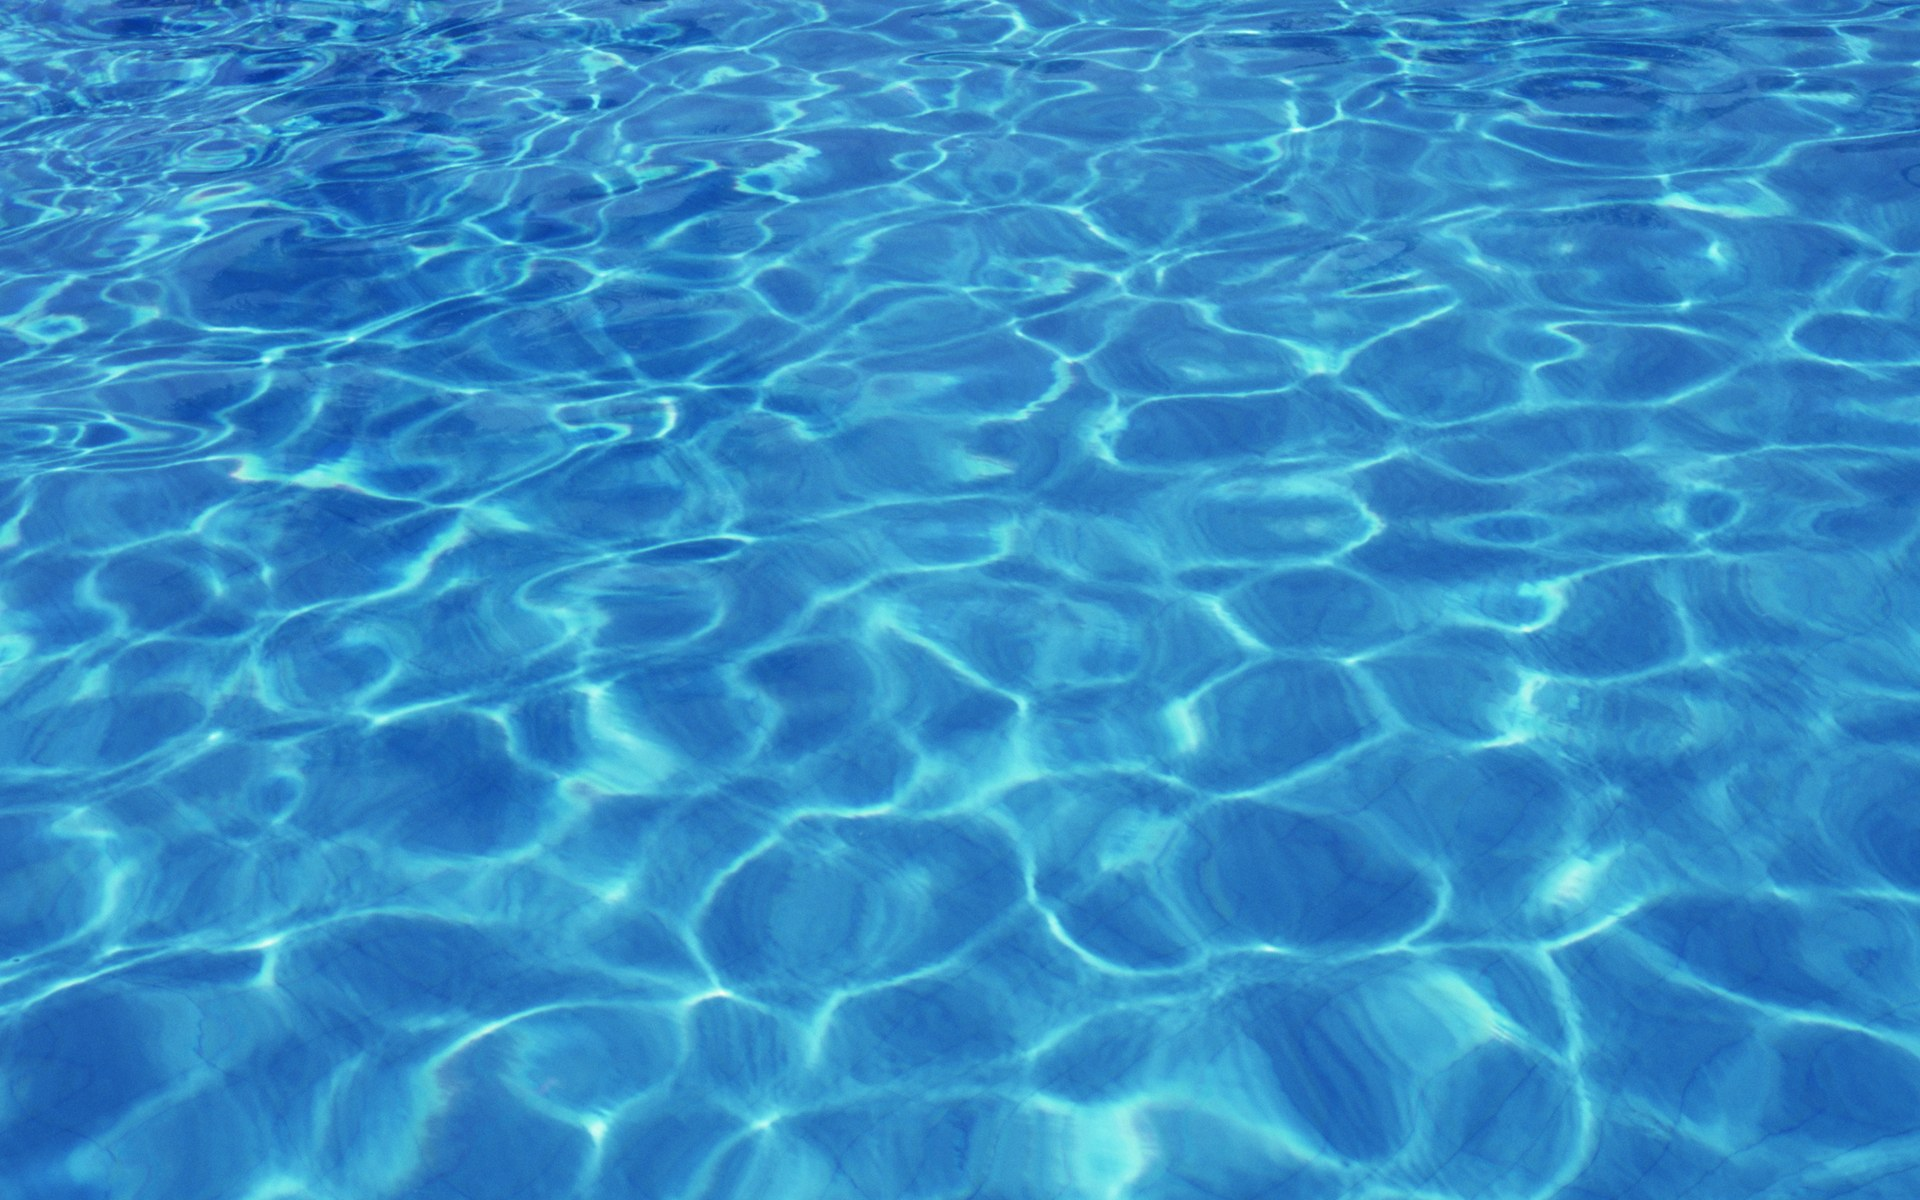 water, texture, blue water, texture background, light